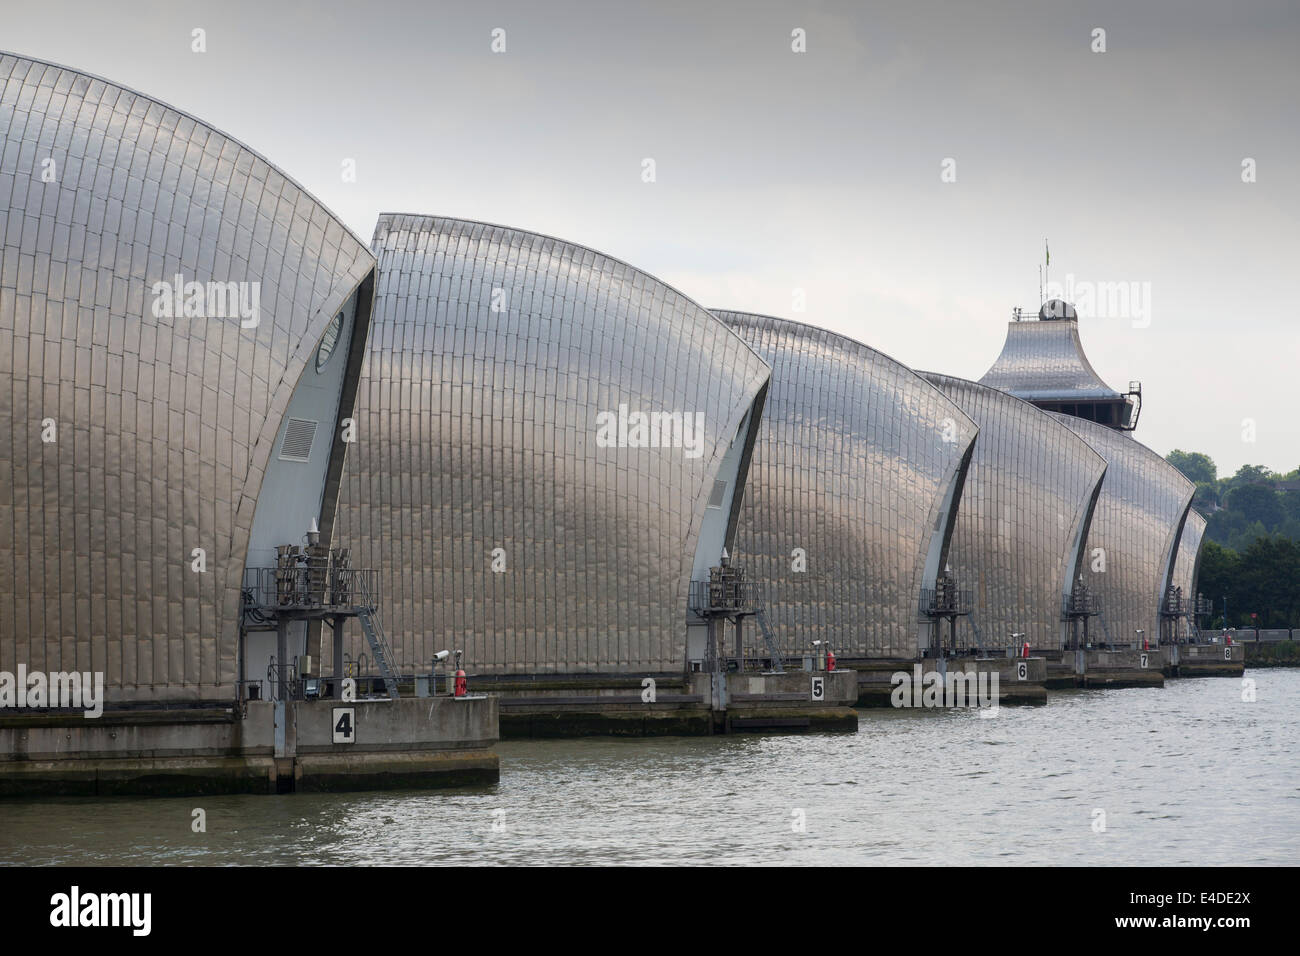 The Thames barrier on the River Thames in London. It was constructed to protect the capital city from storm surge - Stock Image